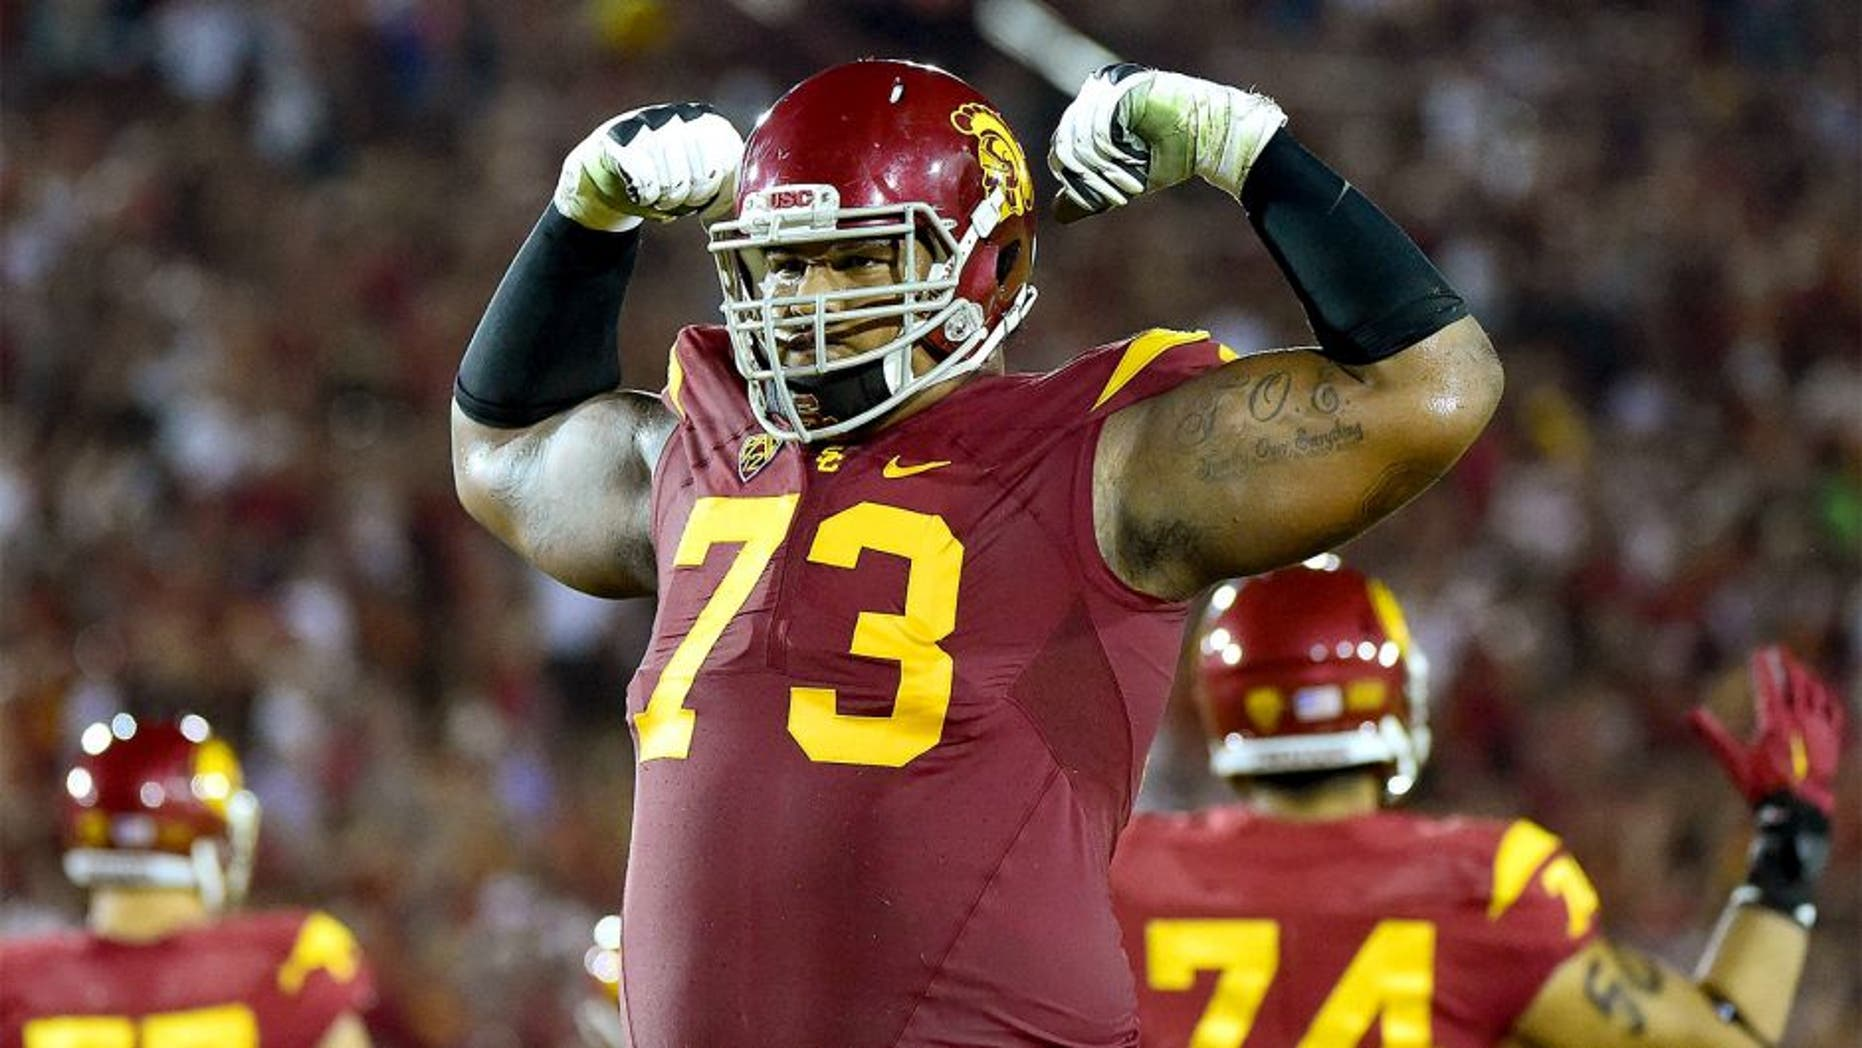 LOS ANGELES, CA - OCTOBER 24: Zach Banner #73 of the USC Trojans celebrates a touchdown to take a 35-17 win over the Utah Utes during the third quarter at Los Angeles Memorial Coliseum on October 24, 2015 in Los Angeles, California. (Photo by Harry How/Getty Images)